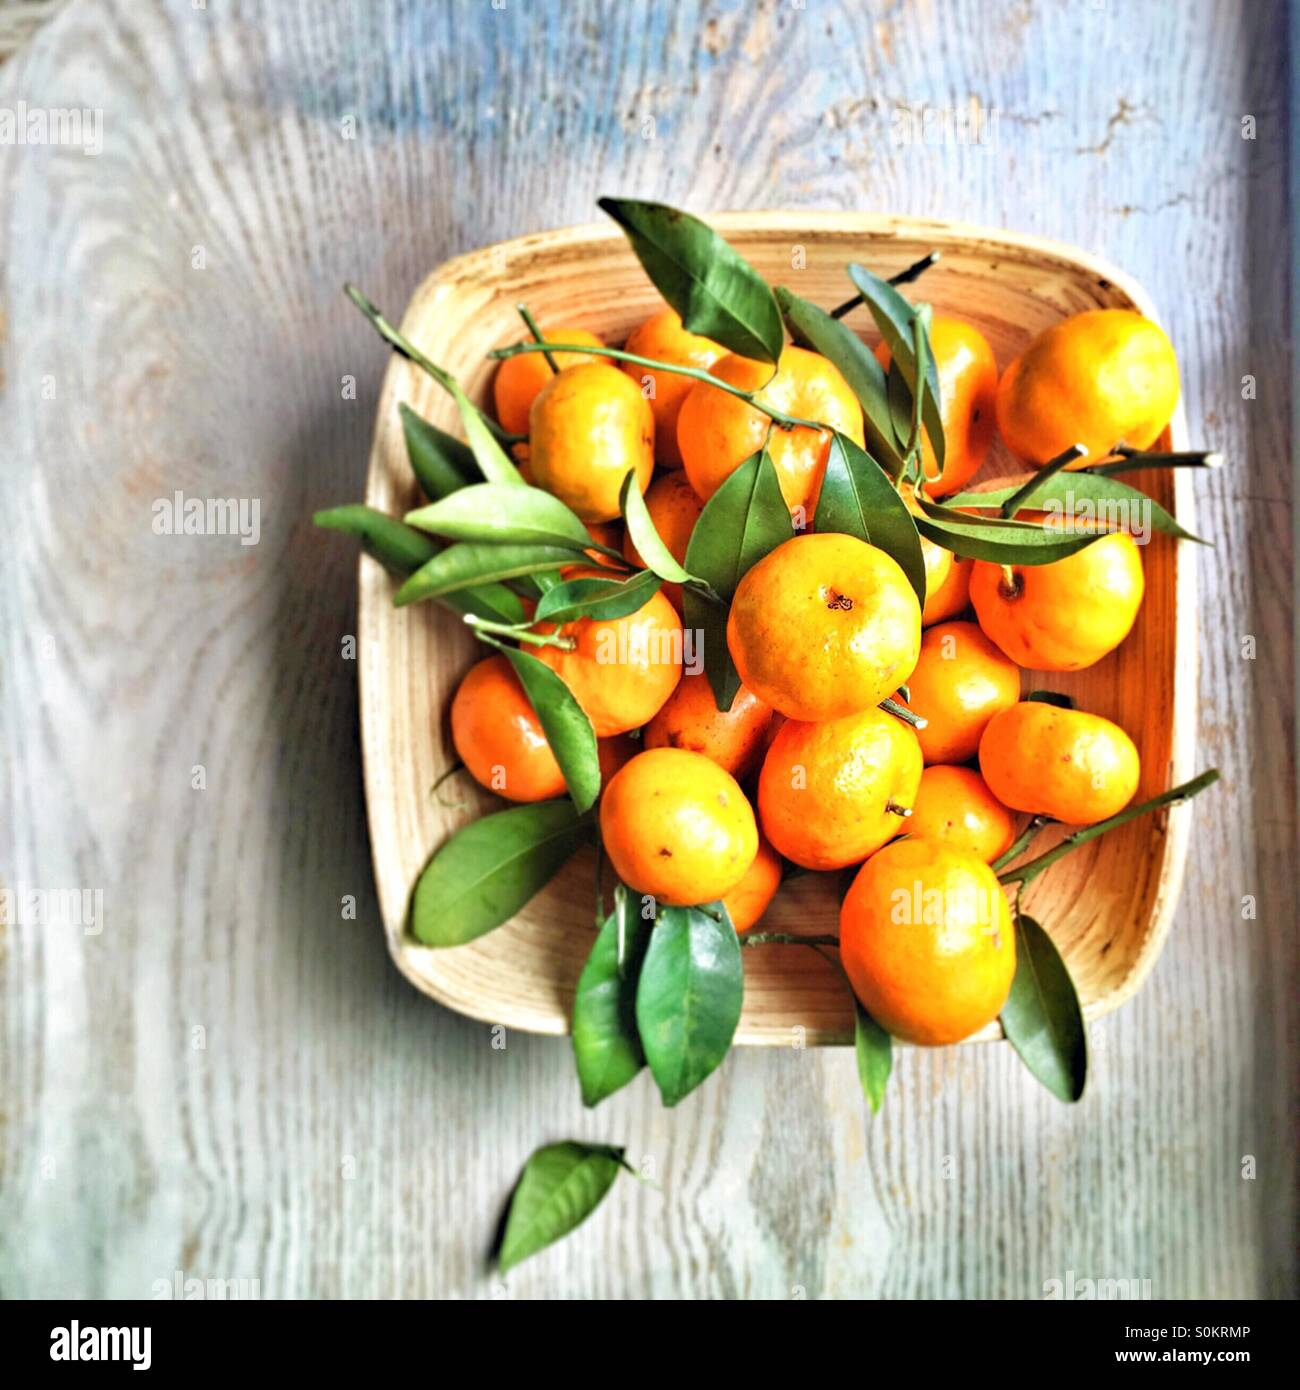 Panier d'oranges Photo Stock